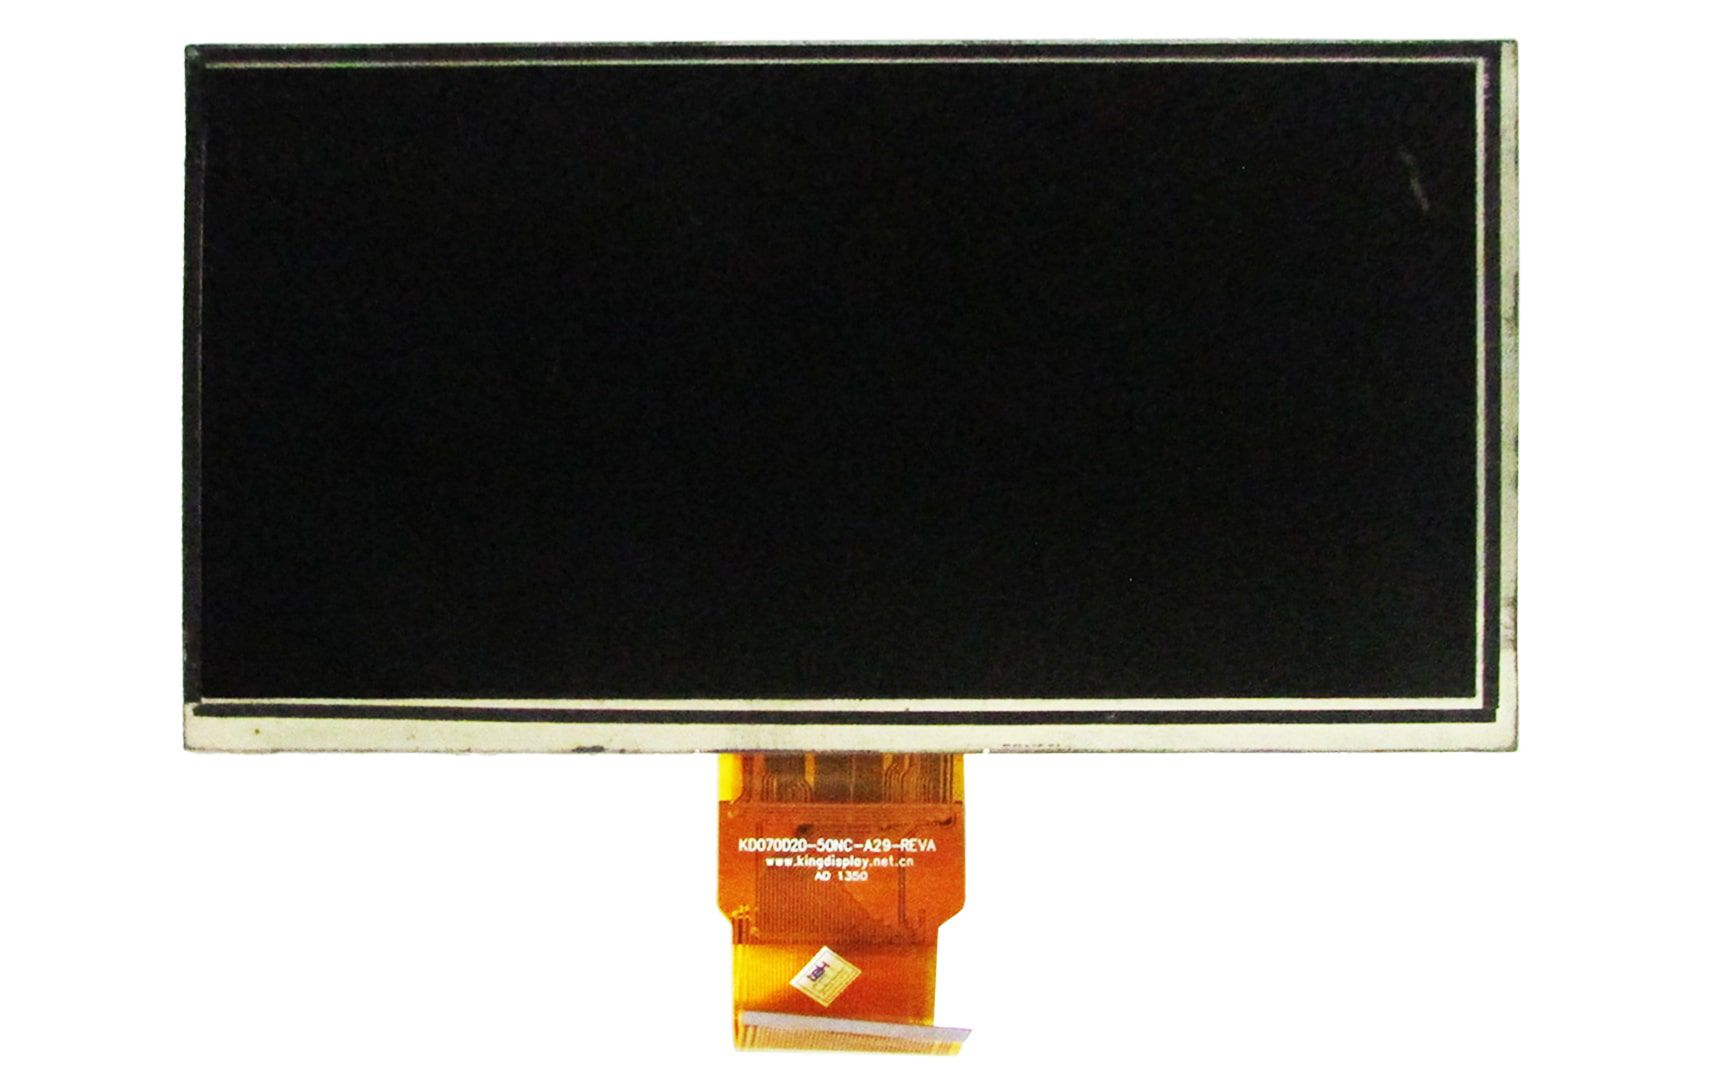 Tela Display Lcd Tablet 7